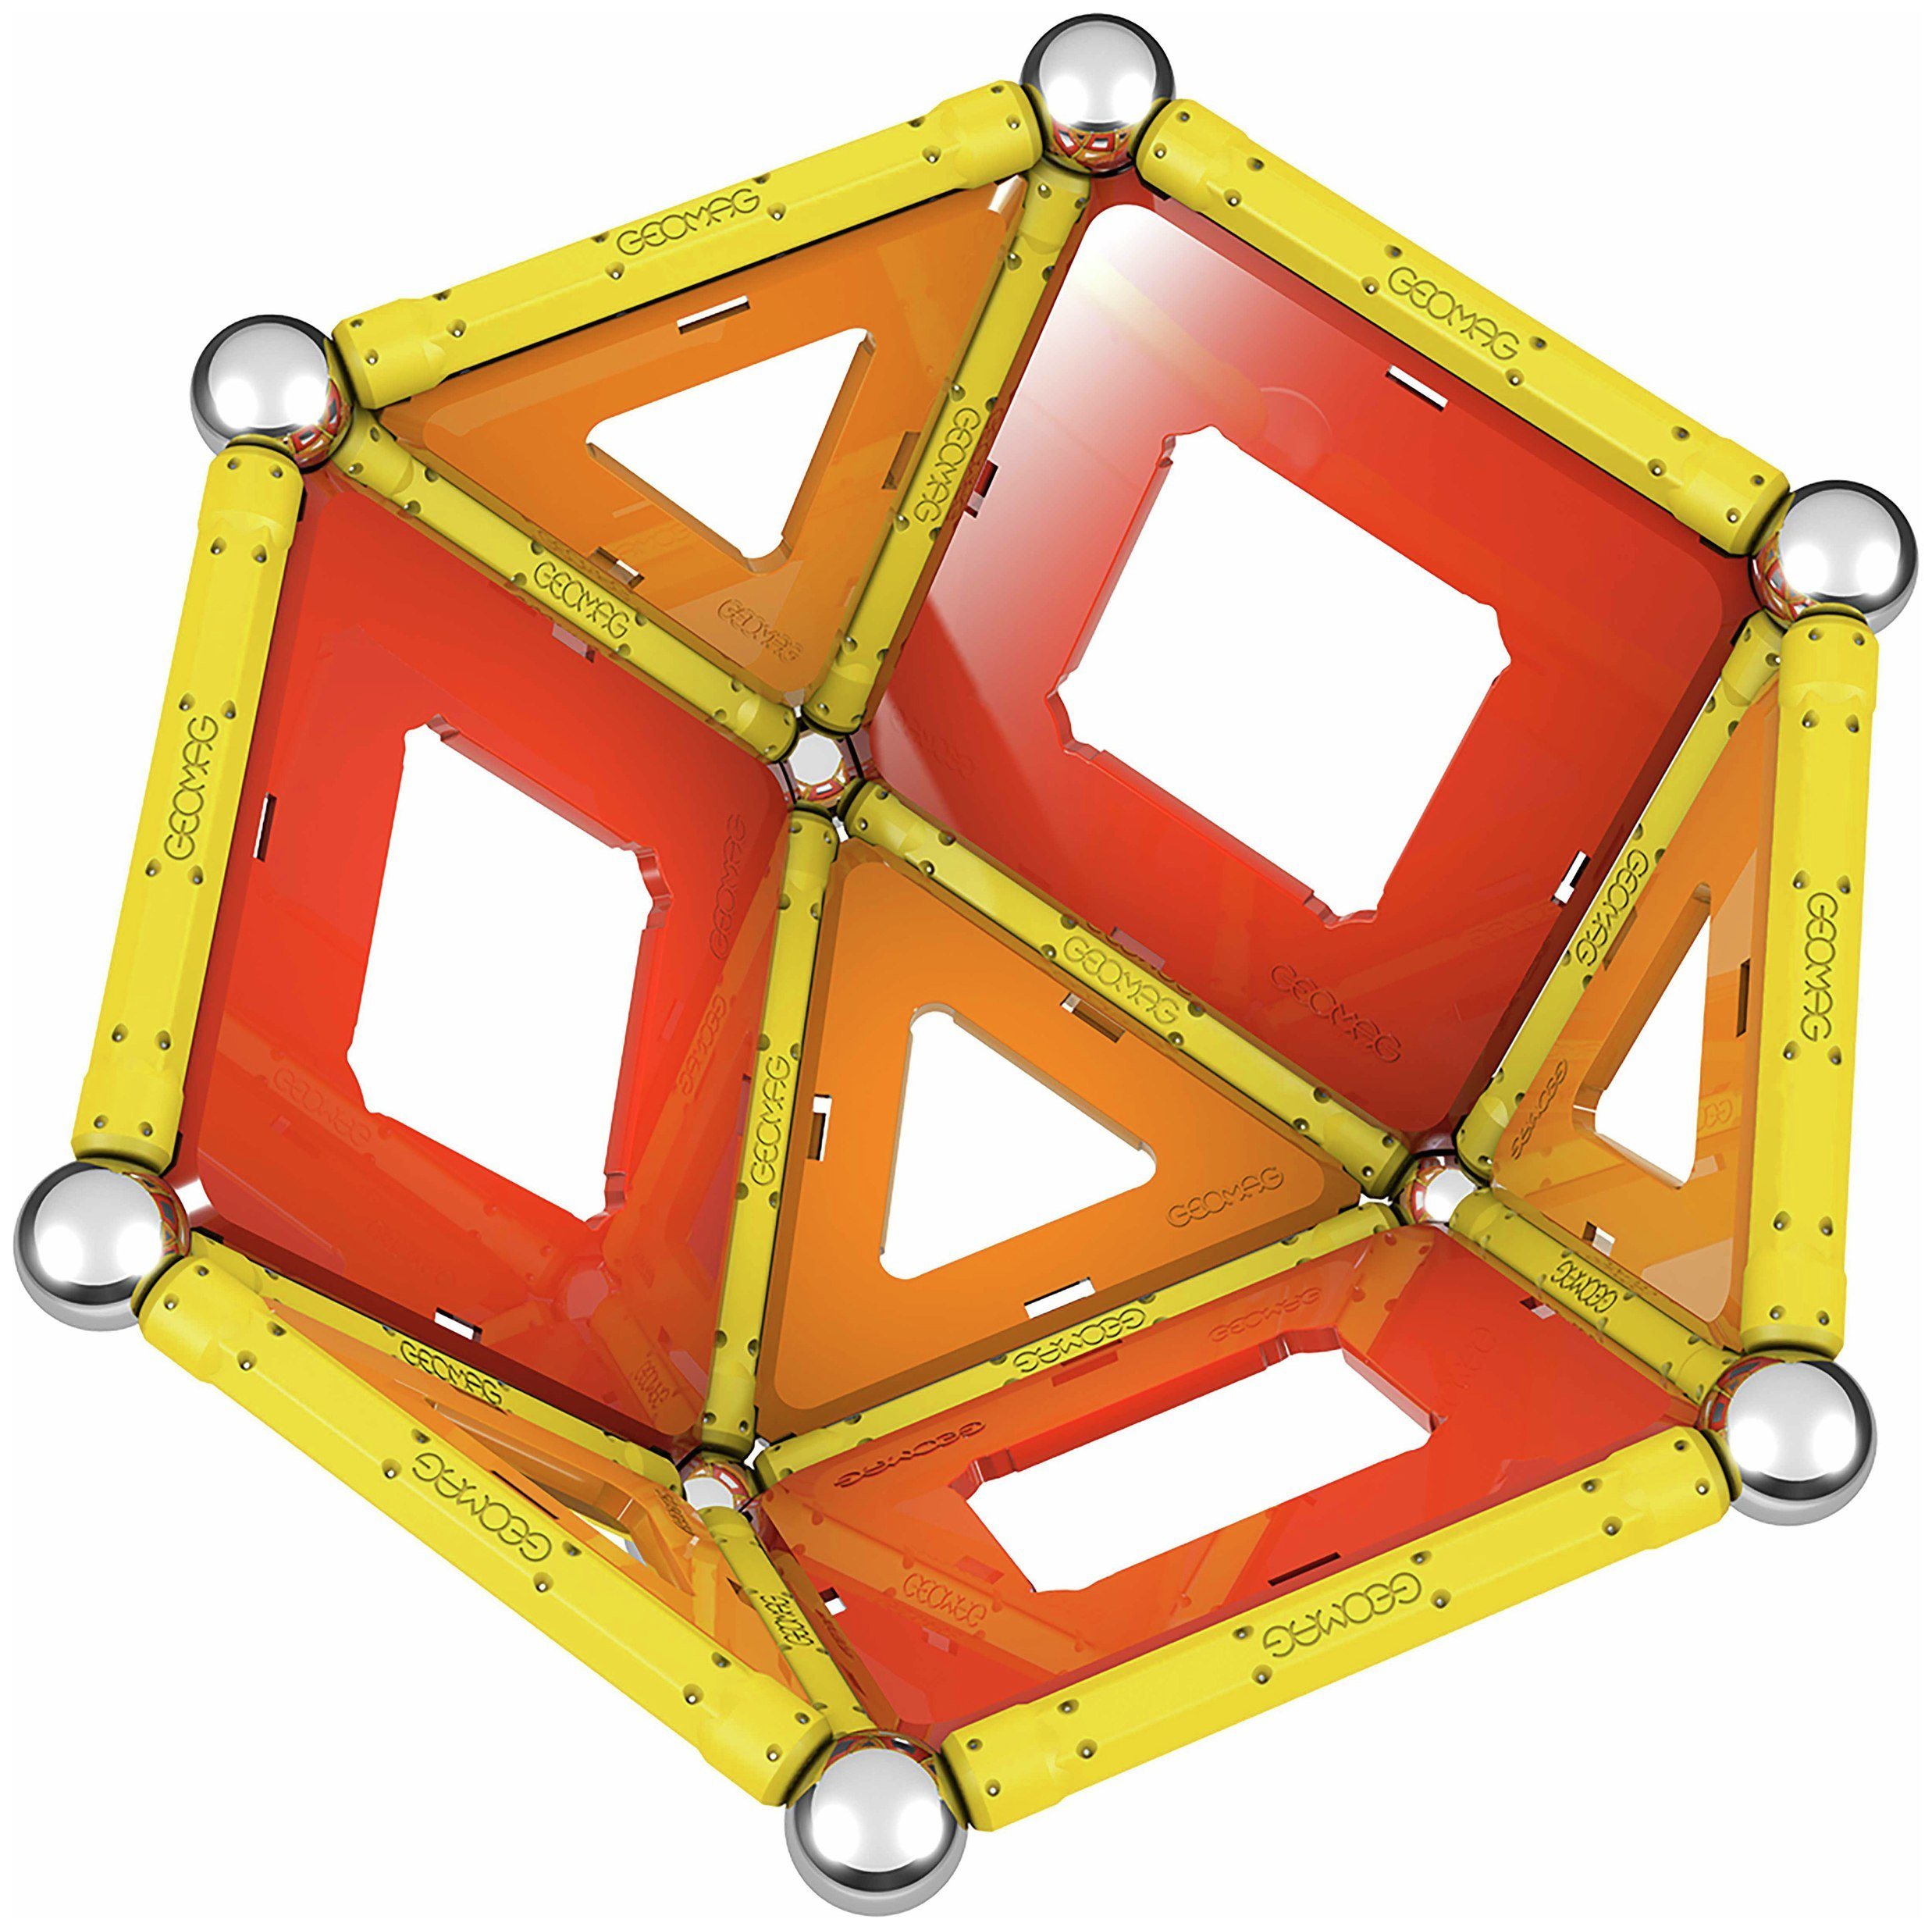 Image of Geomag Panels Building Kit.